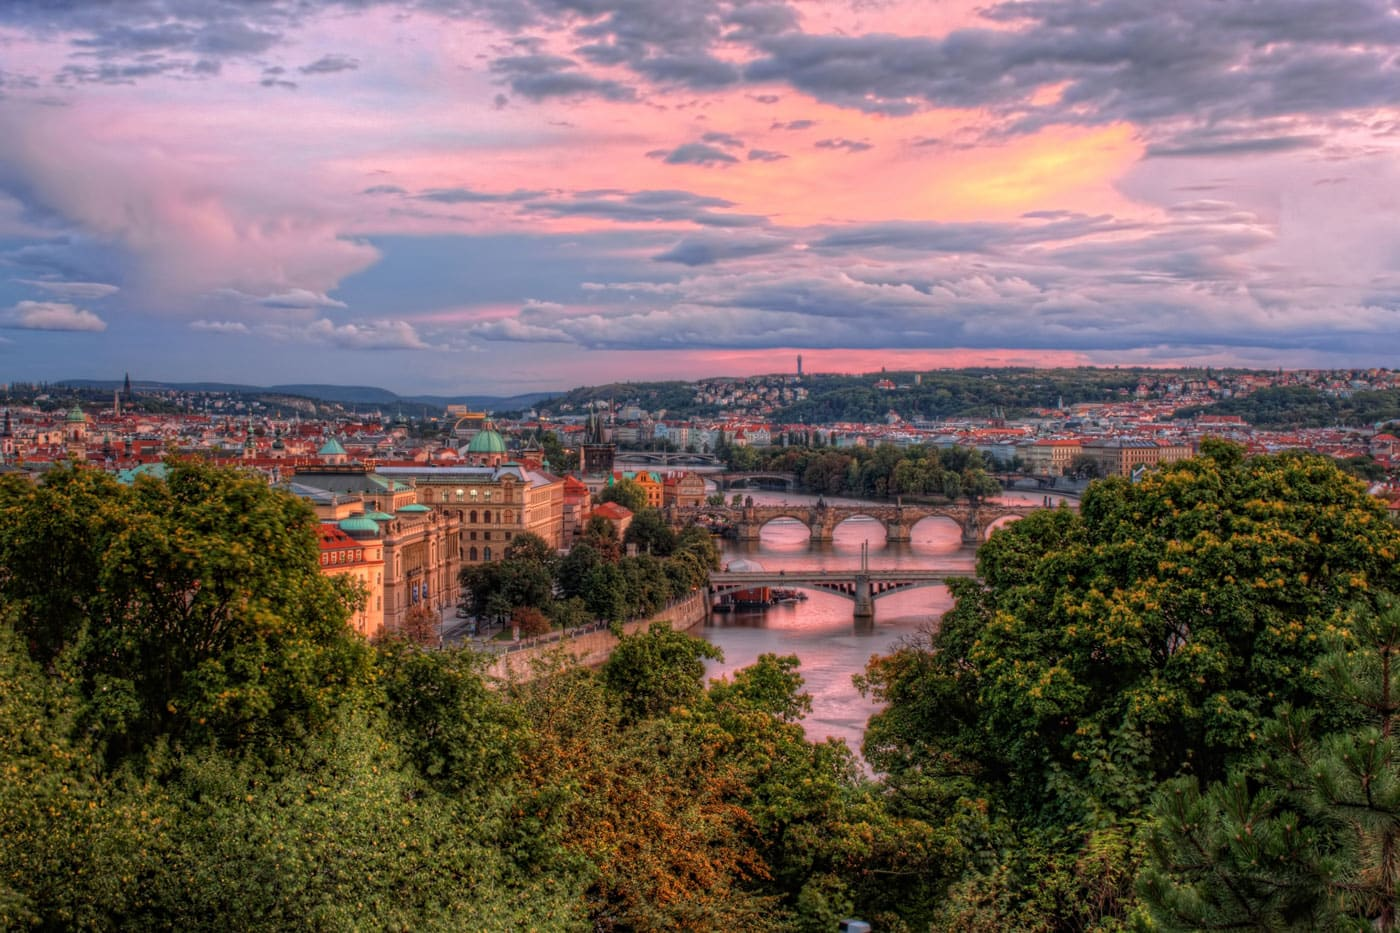 Prague seen from Letna Park. The Bridges on Vltava in pink Sunset light. HDR Photo from Czech Republic.